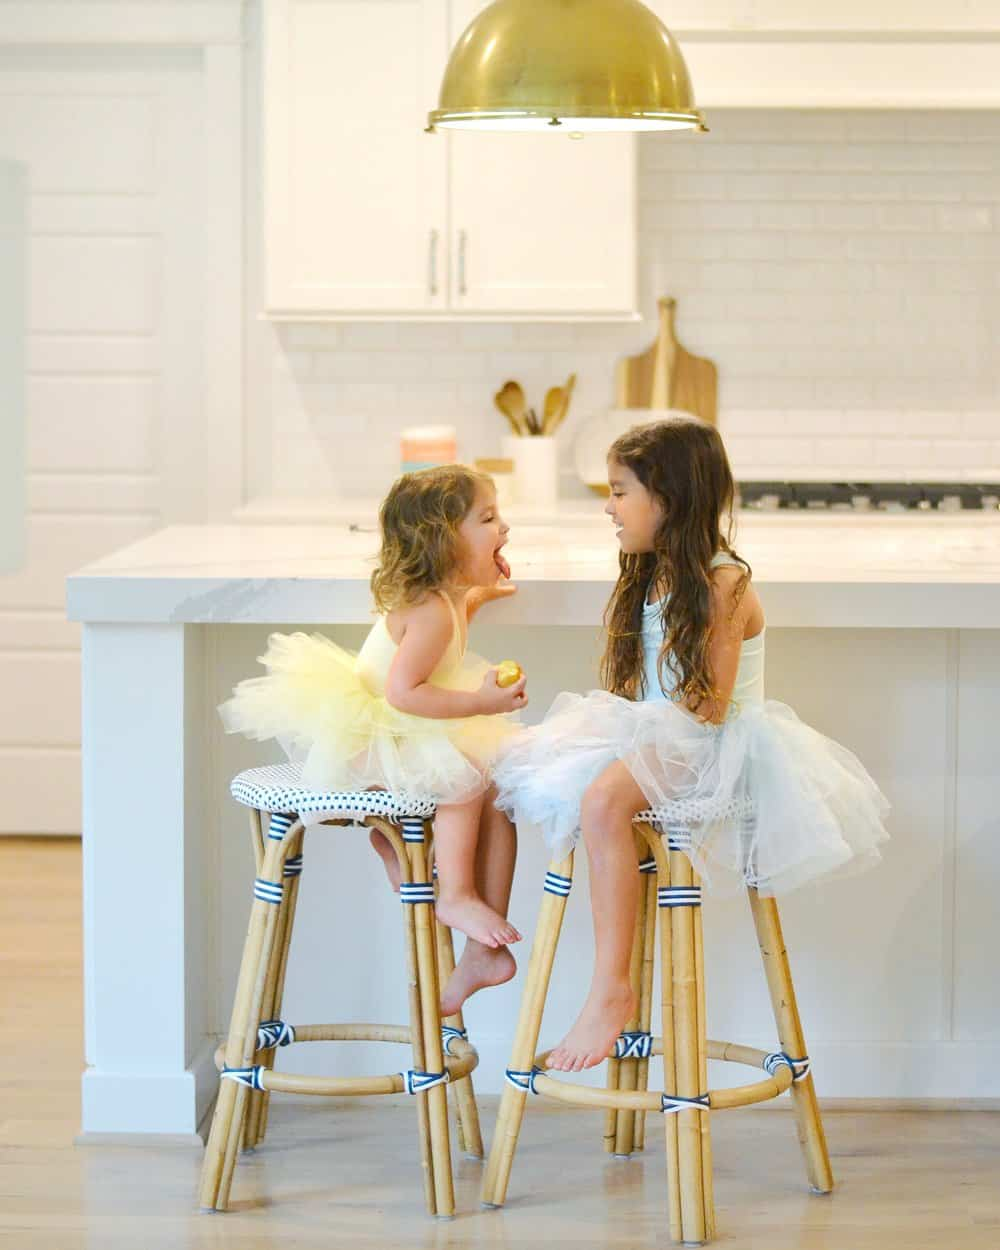 2 girls in tutus sitting on Serena & lily bar stools in a kitchen (the riviera)